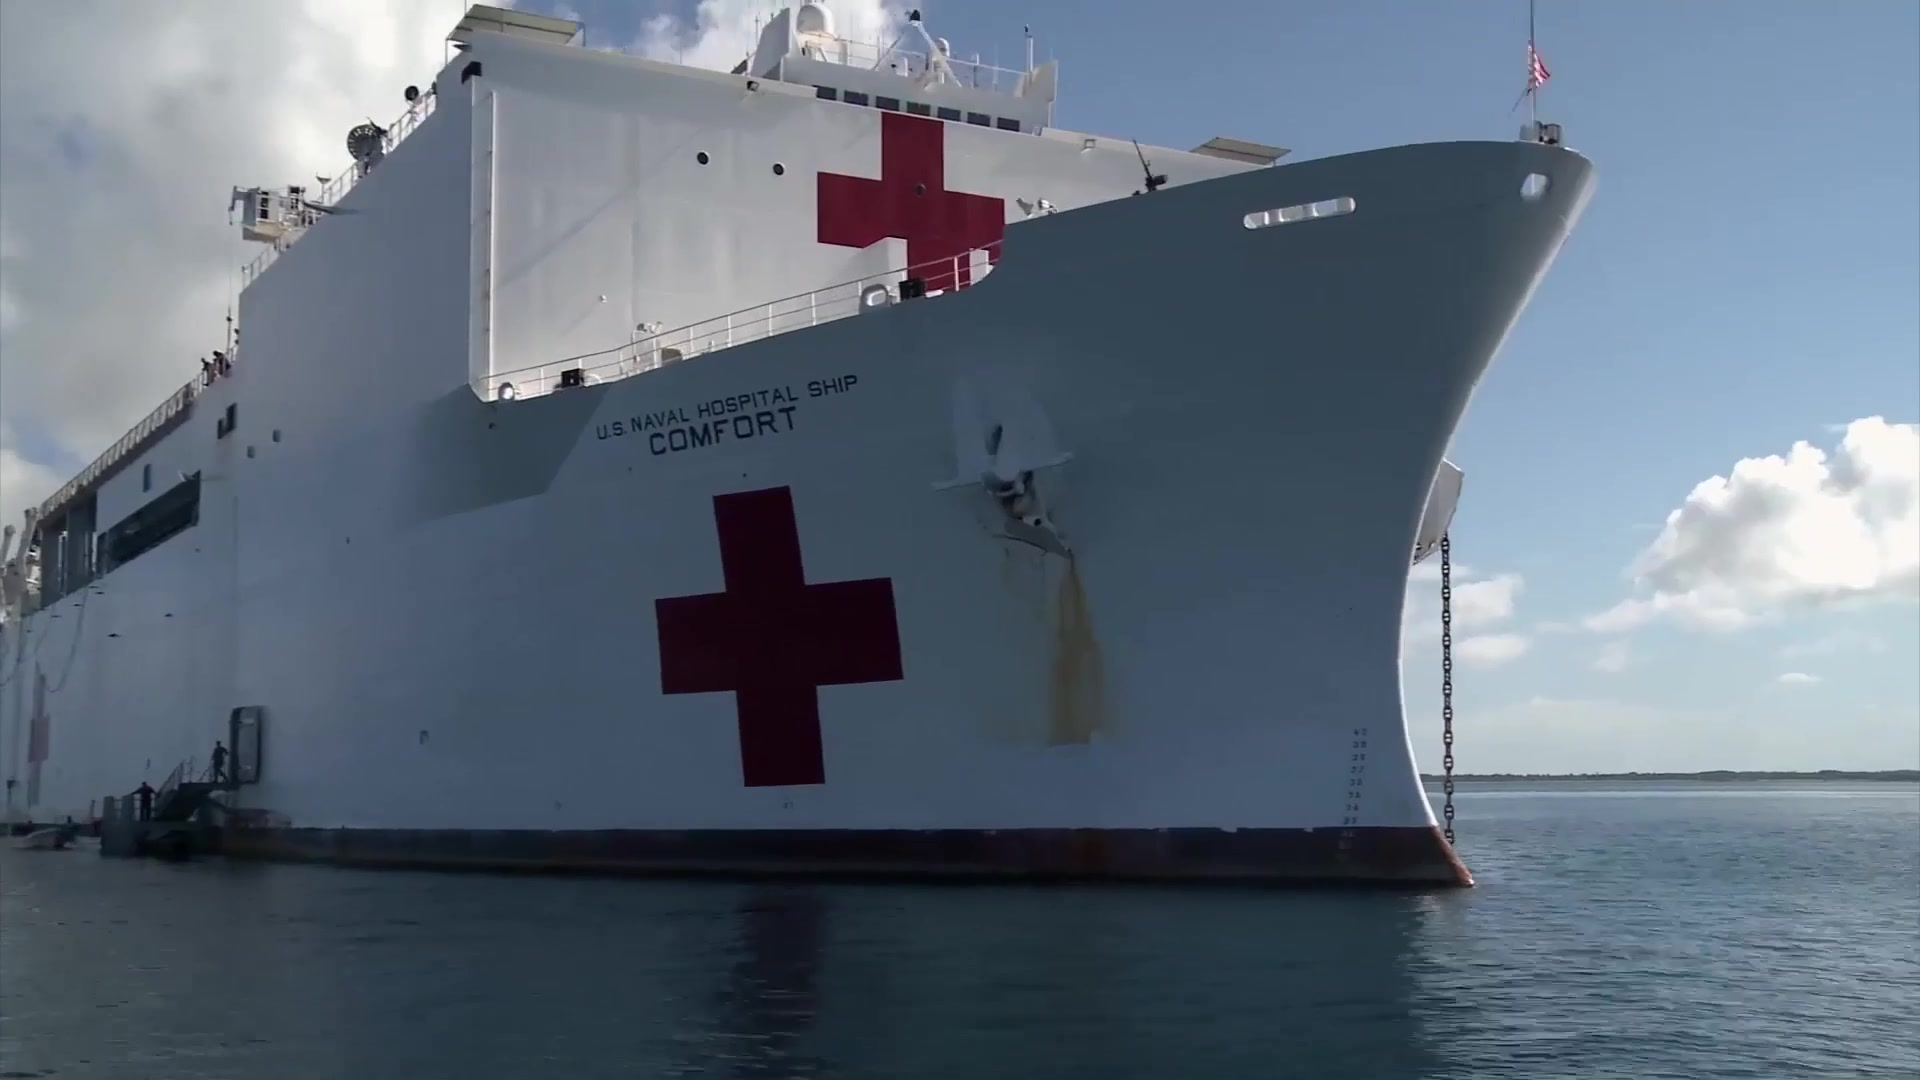 The USNS Comfort celebrates her seventh deployment as part of U.S. Southern Command's enduring promise of care and friendship for partner nations in the Americas. During the five-month humanitarian tour, the ship will conduct port calls to 12 nations.